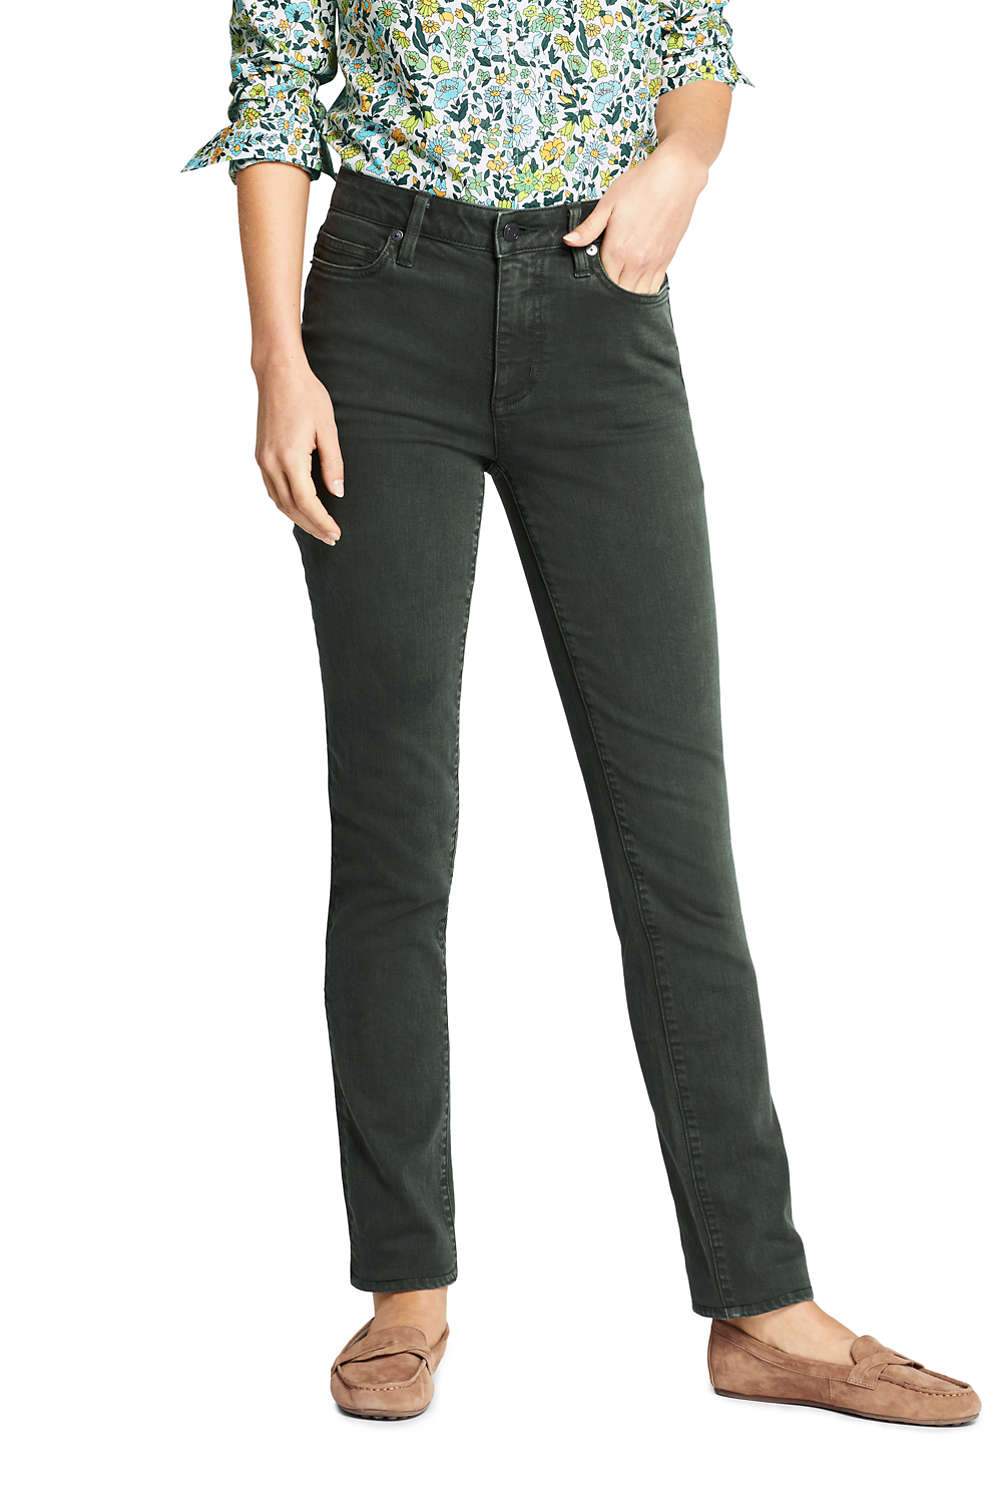 new release footwear latest trends of 2019 Women's High Rise Straight Leg Ankle Jeans - Color